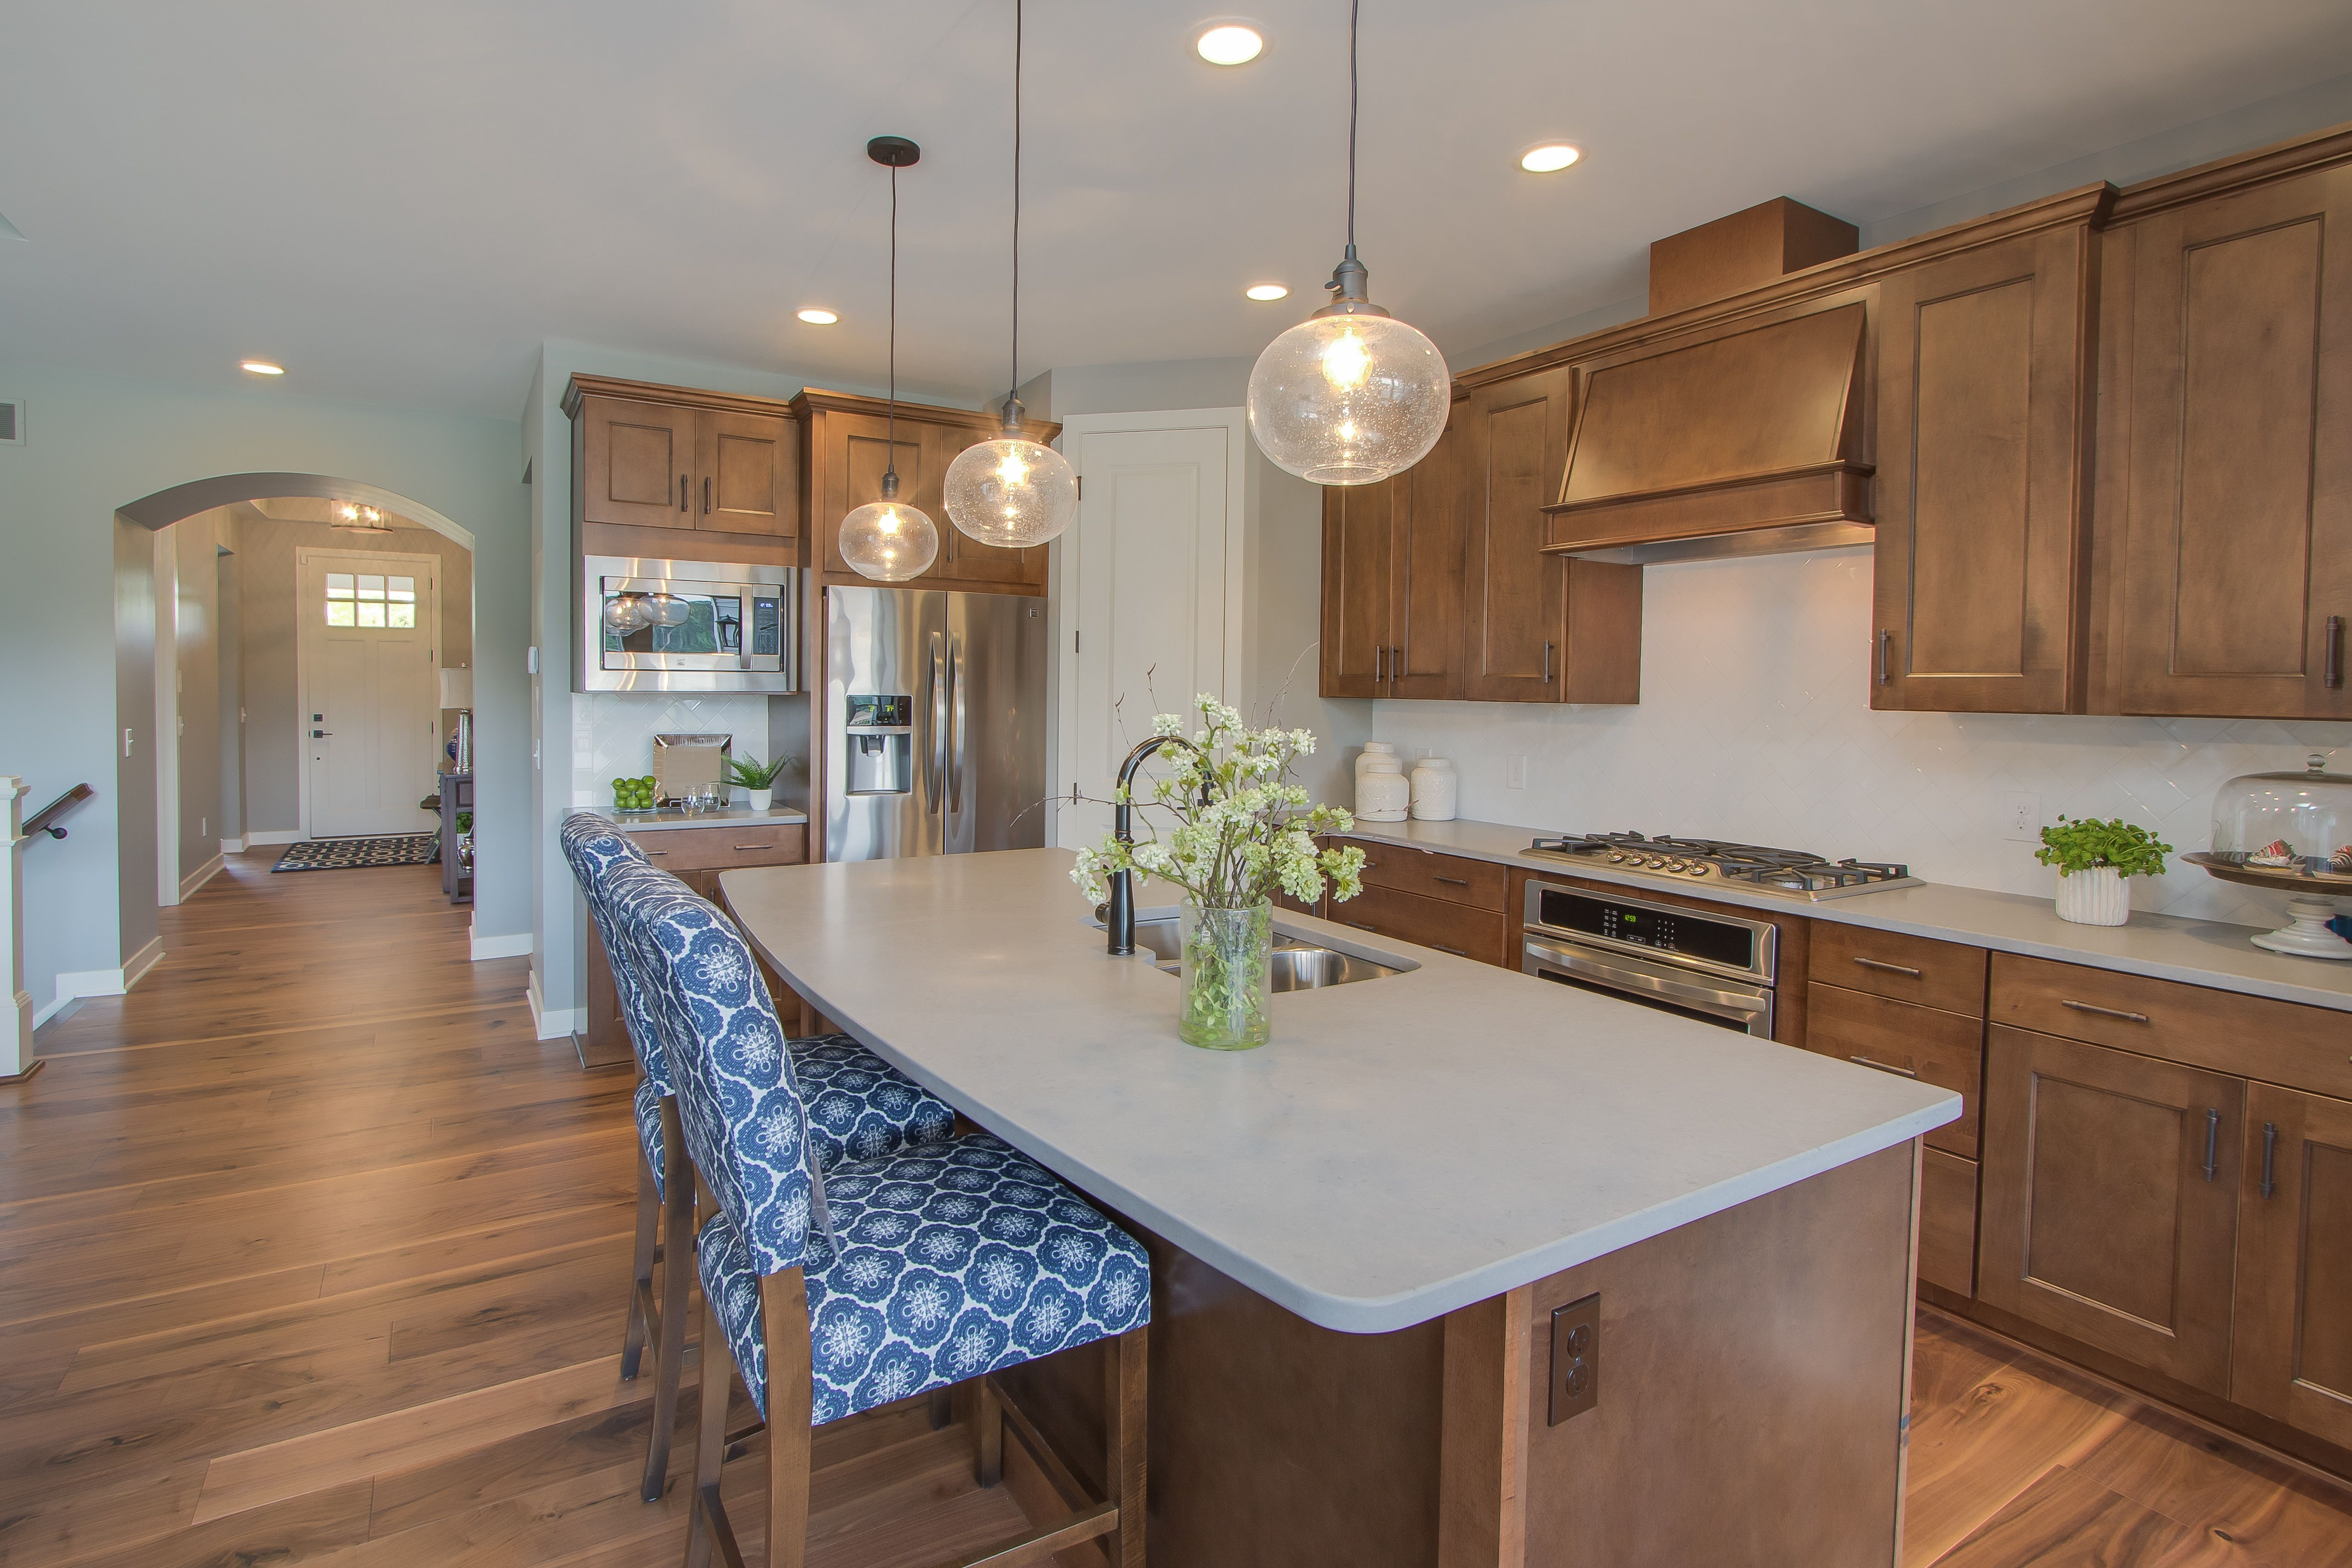 refinishing floors old disaster new part hardwood matching kitchen our home town b floor and